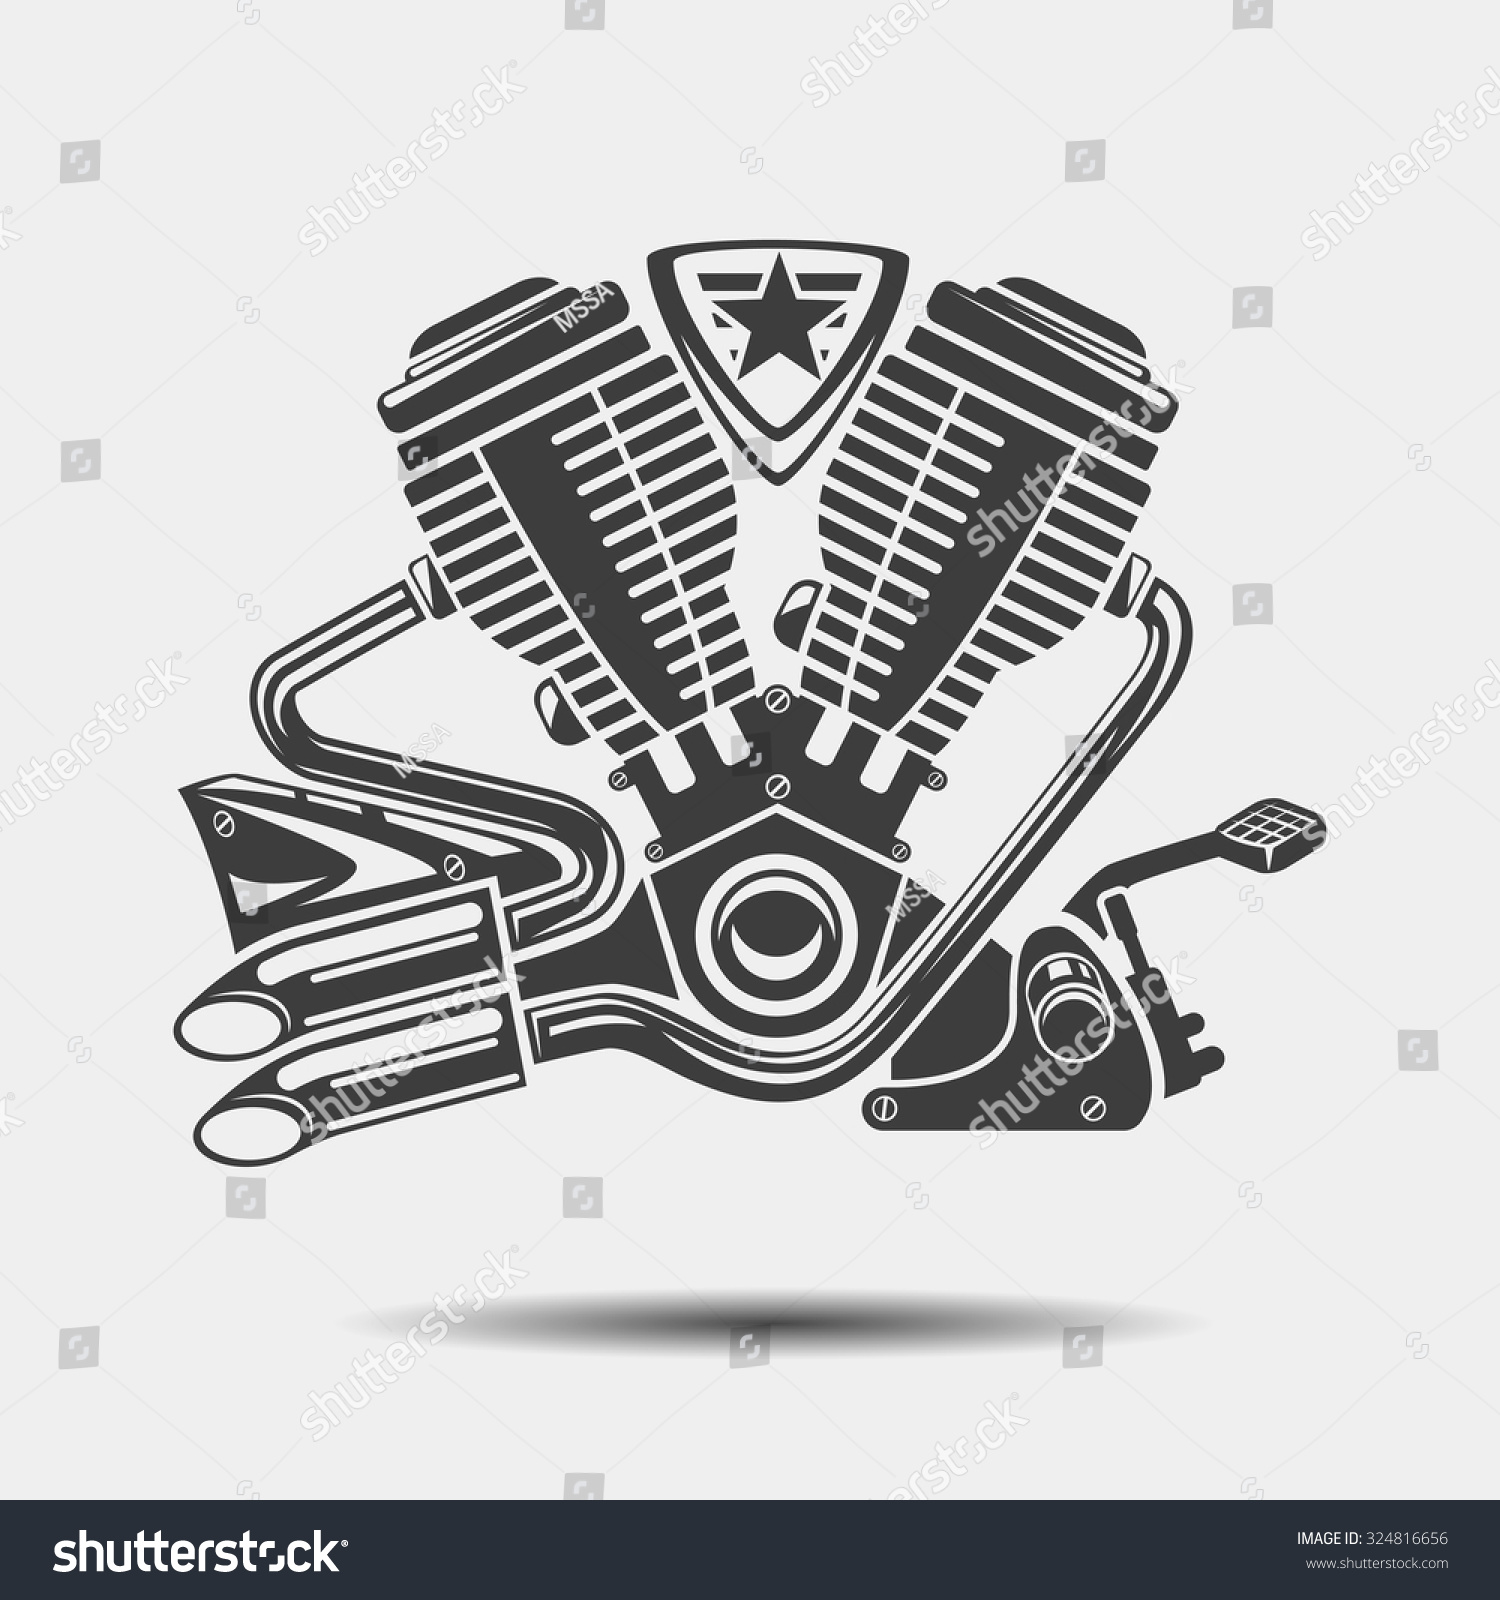 2 Ignitionsystem likewise 40110 Fiat 1100 Premier Padmini Technical Information Thread 86 besides 1965 Cessna 150f Wcont O 200a Vfr 4550aftt 1381 321892593980 further BattreyTest as well Spark plug fouling. on 4 cylinder dwell angle